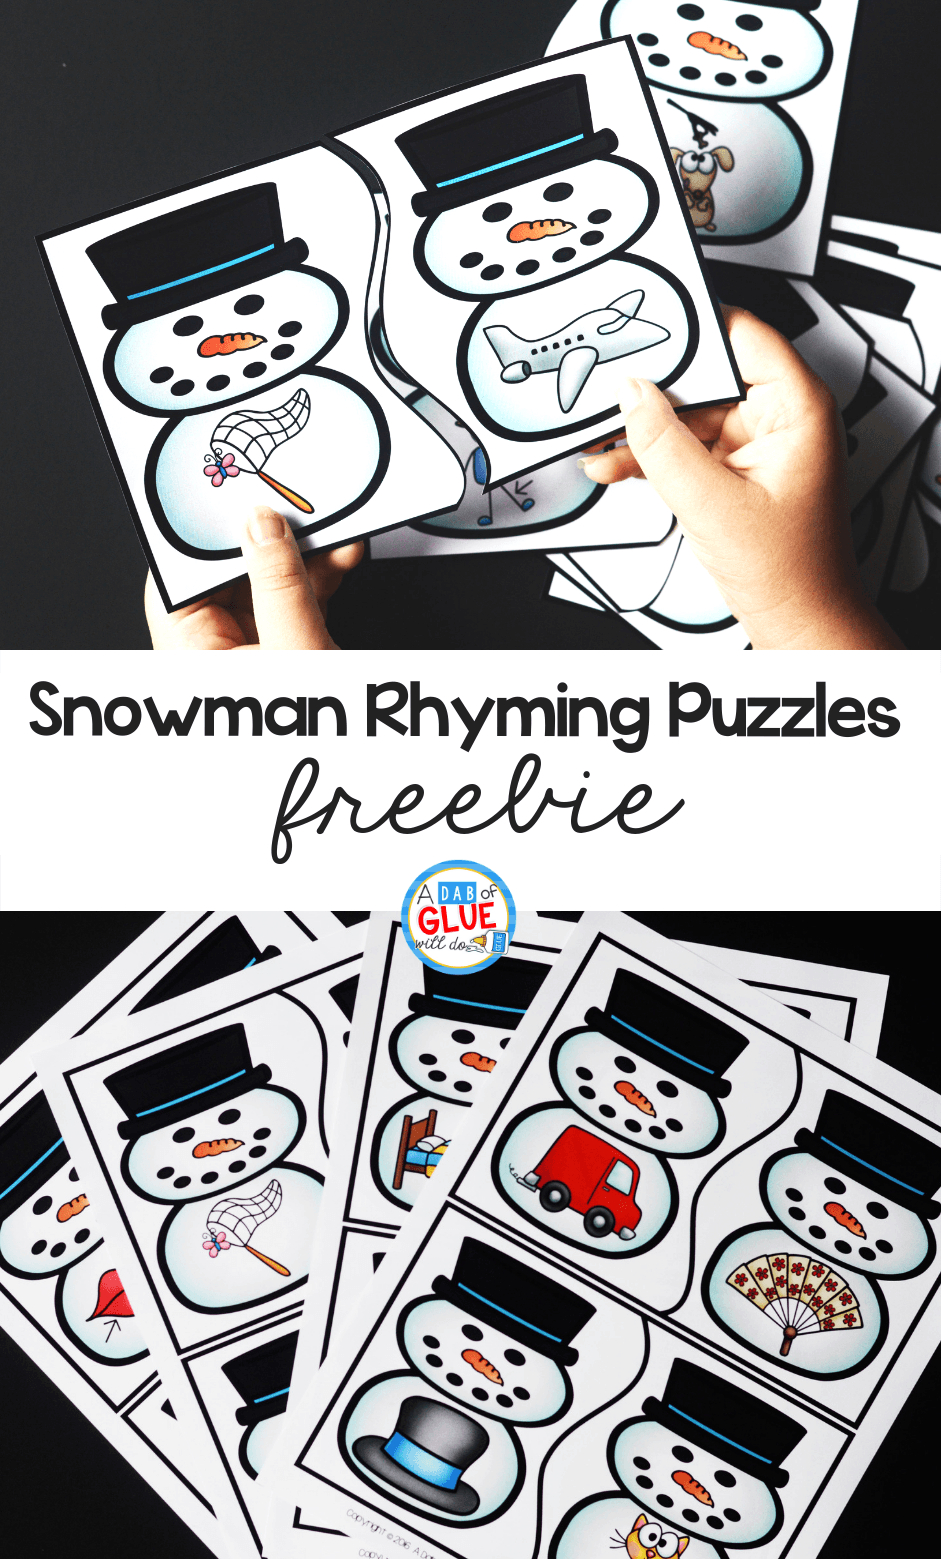 Snowman Rhyming Puzzles - A Dab Of Glue Will Do - Printable Rhyming Puzzles